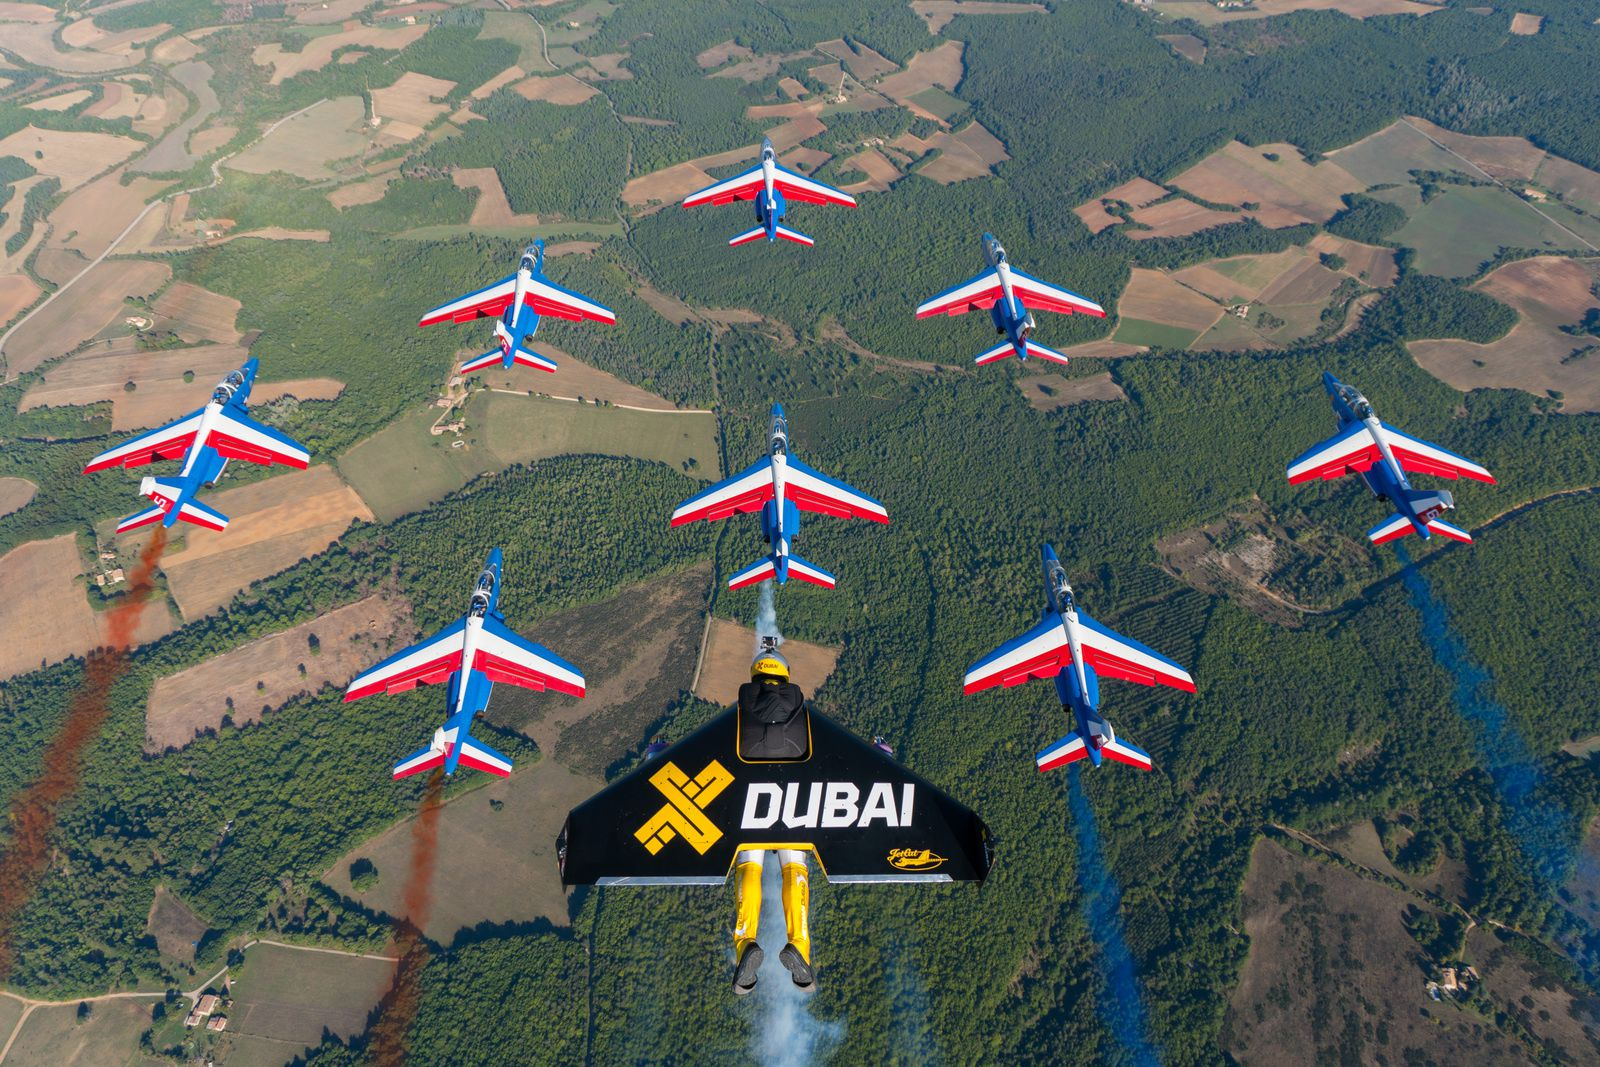 PHOTO - VIDEO : La Patrouille de France vole en formation avec les Jetmen